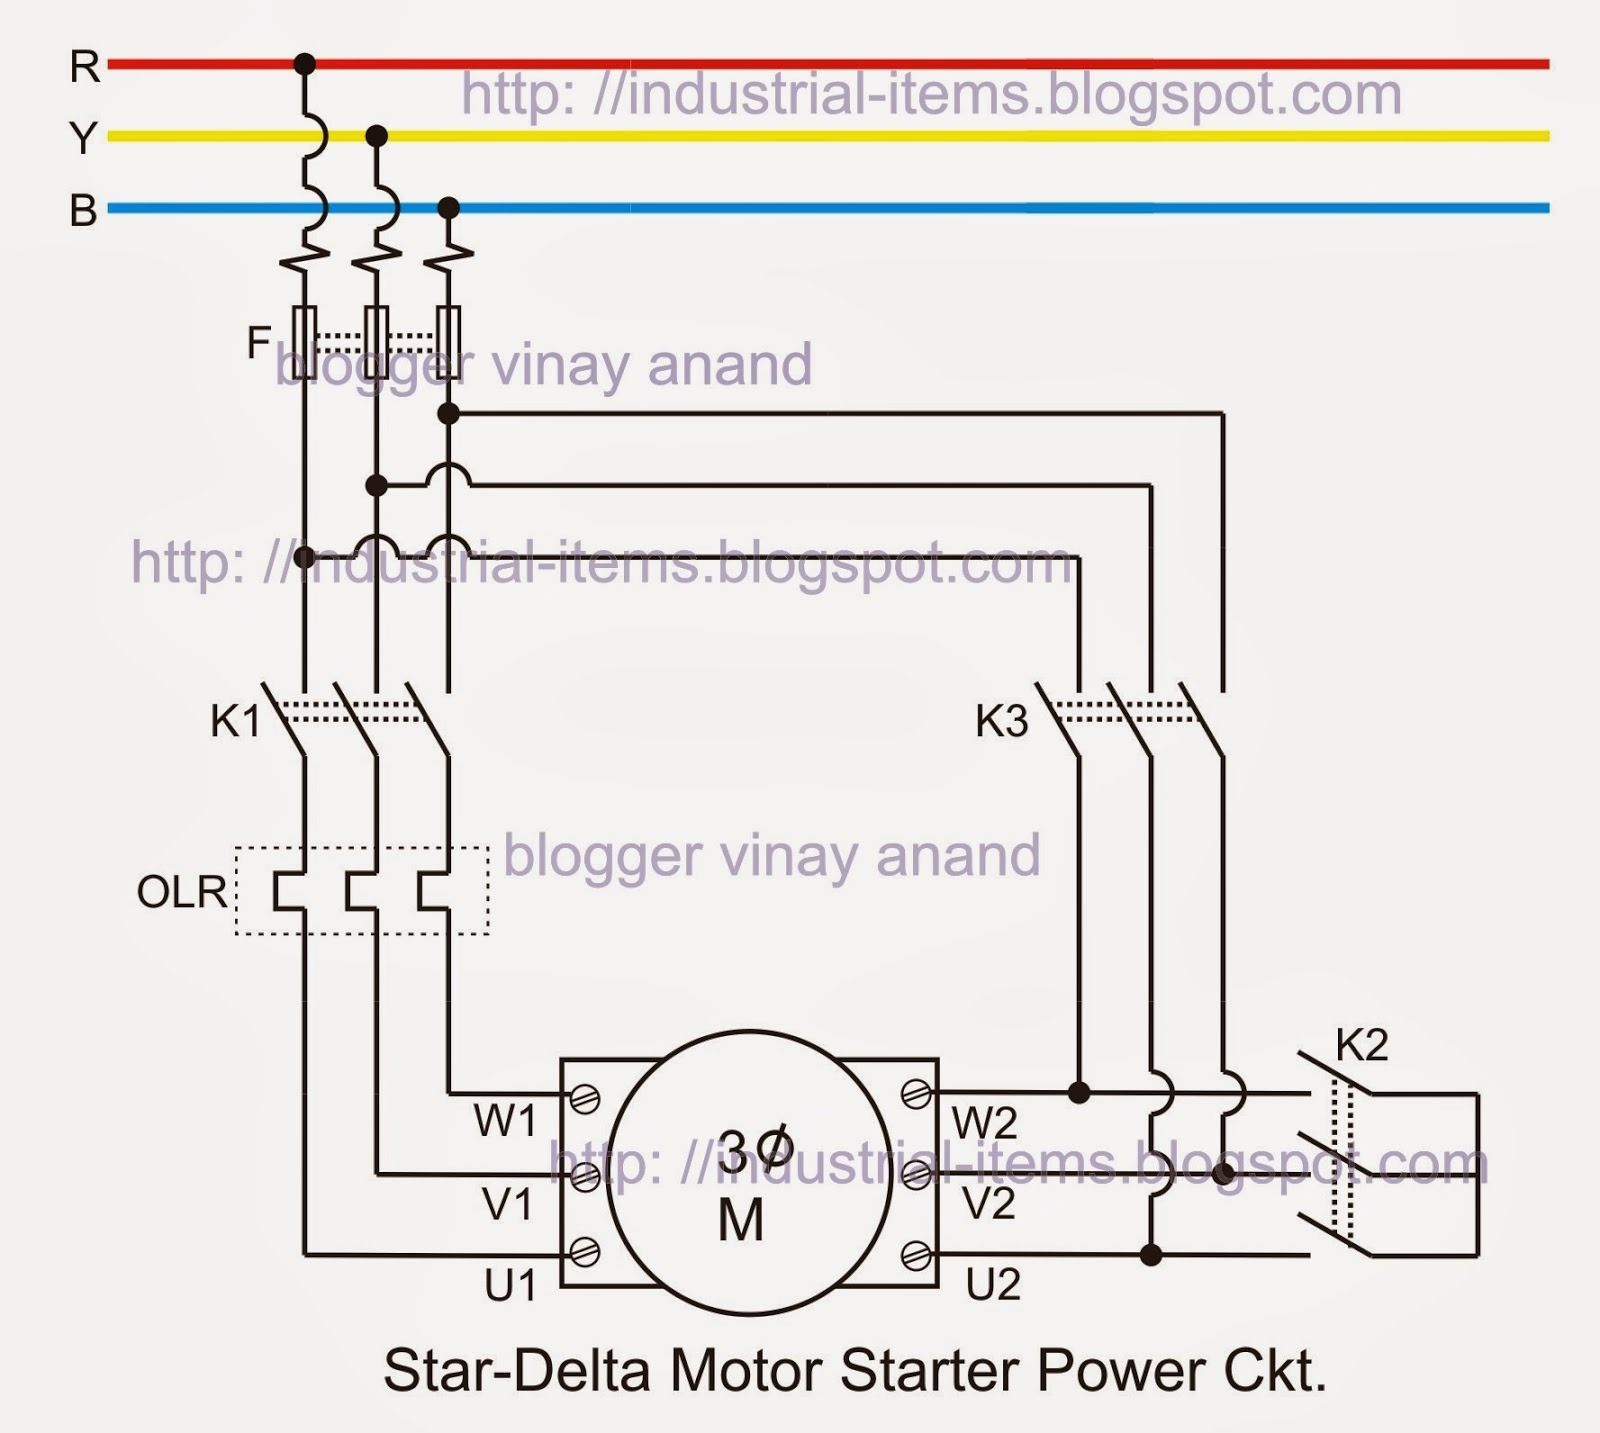 Reduced Voltage Starter Wiring Diagram Proposal Tulisan Surat